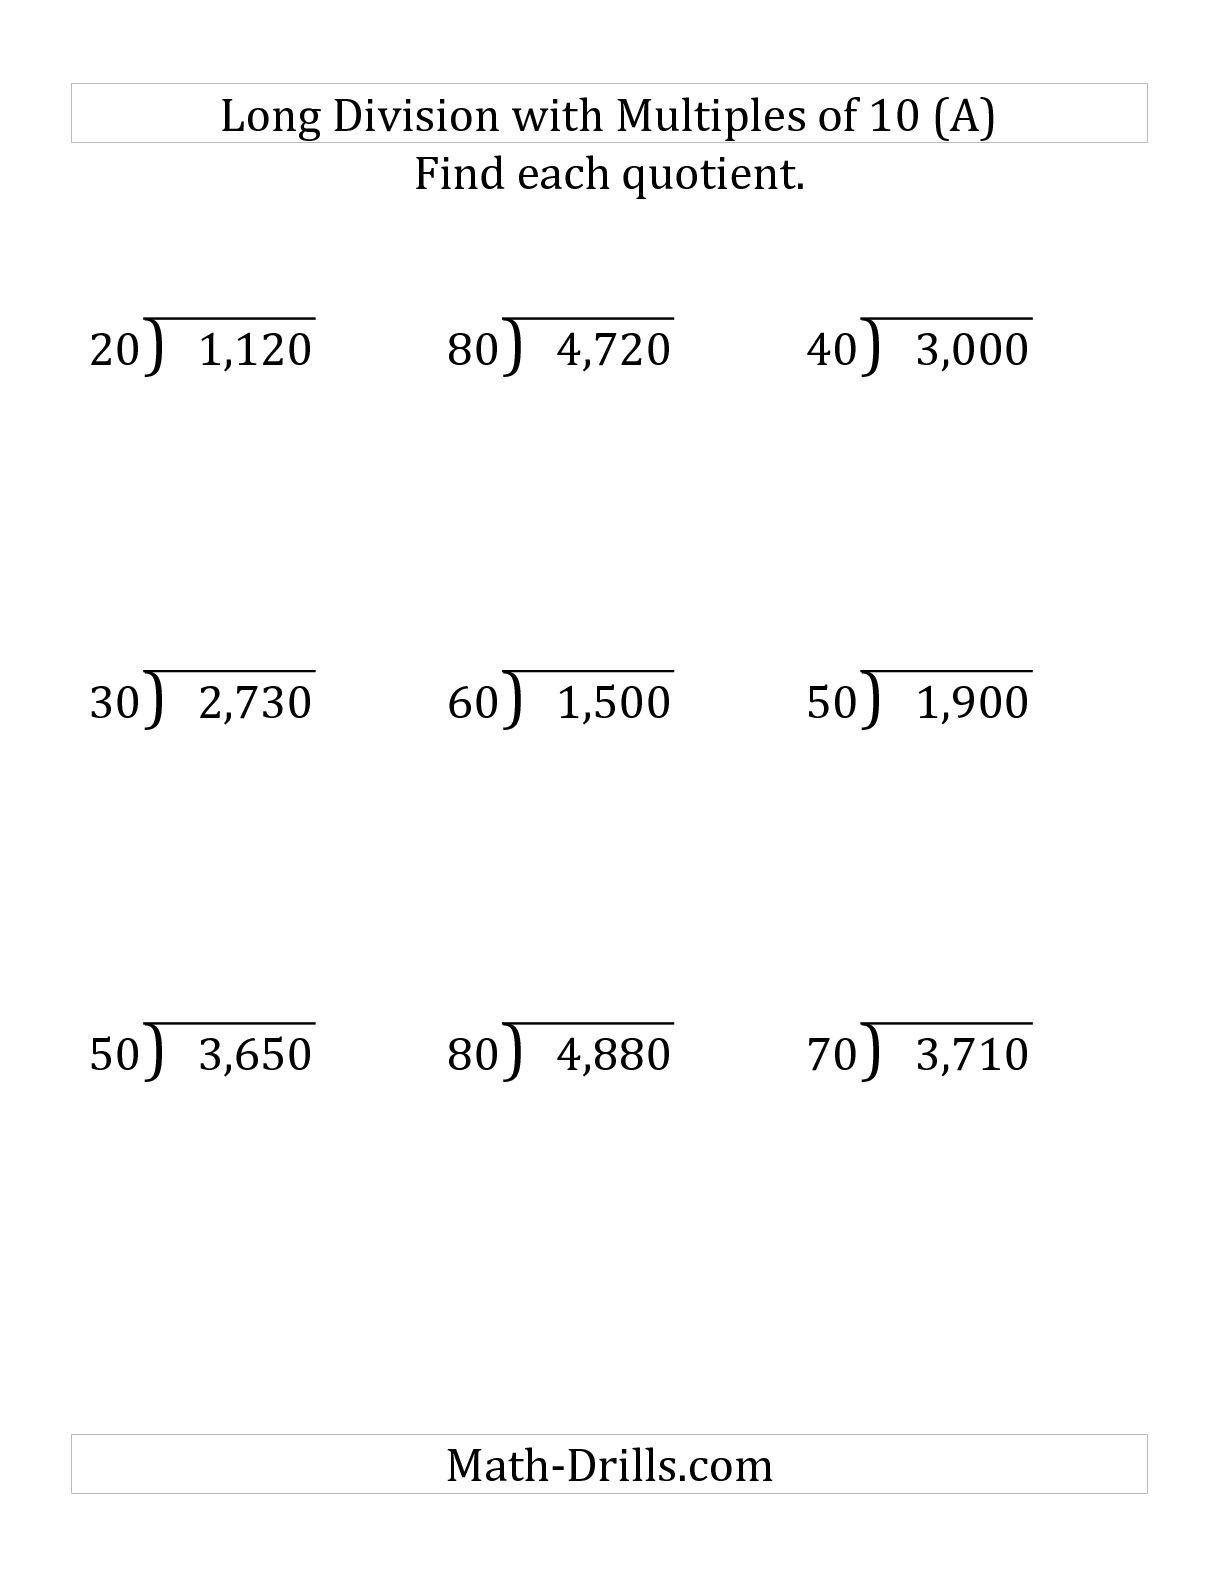 Short Division Worksheet No Remainders